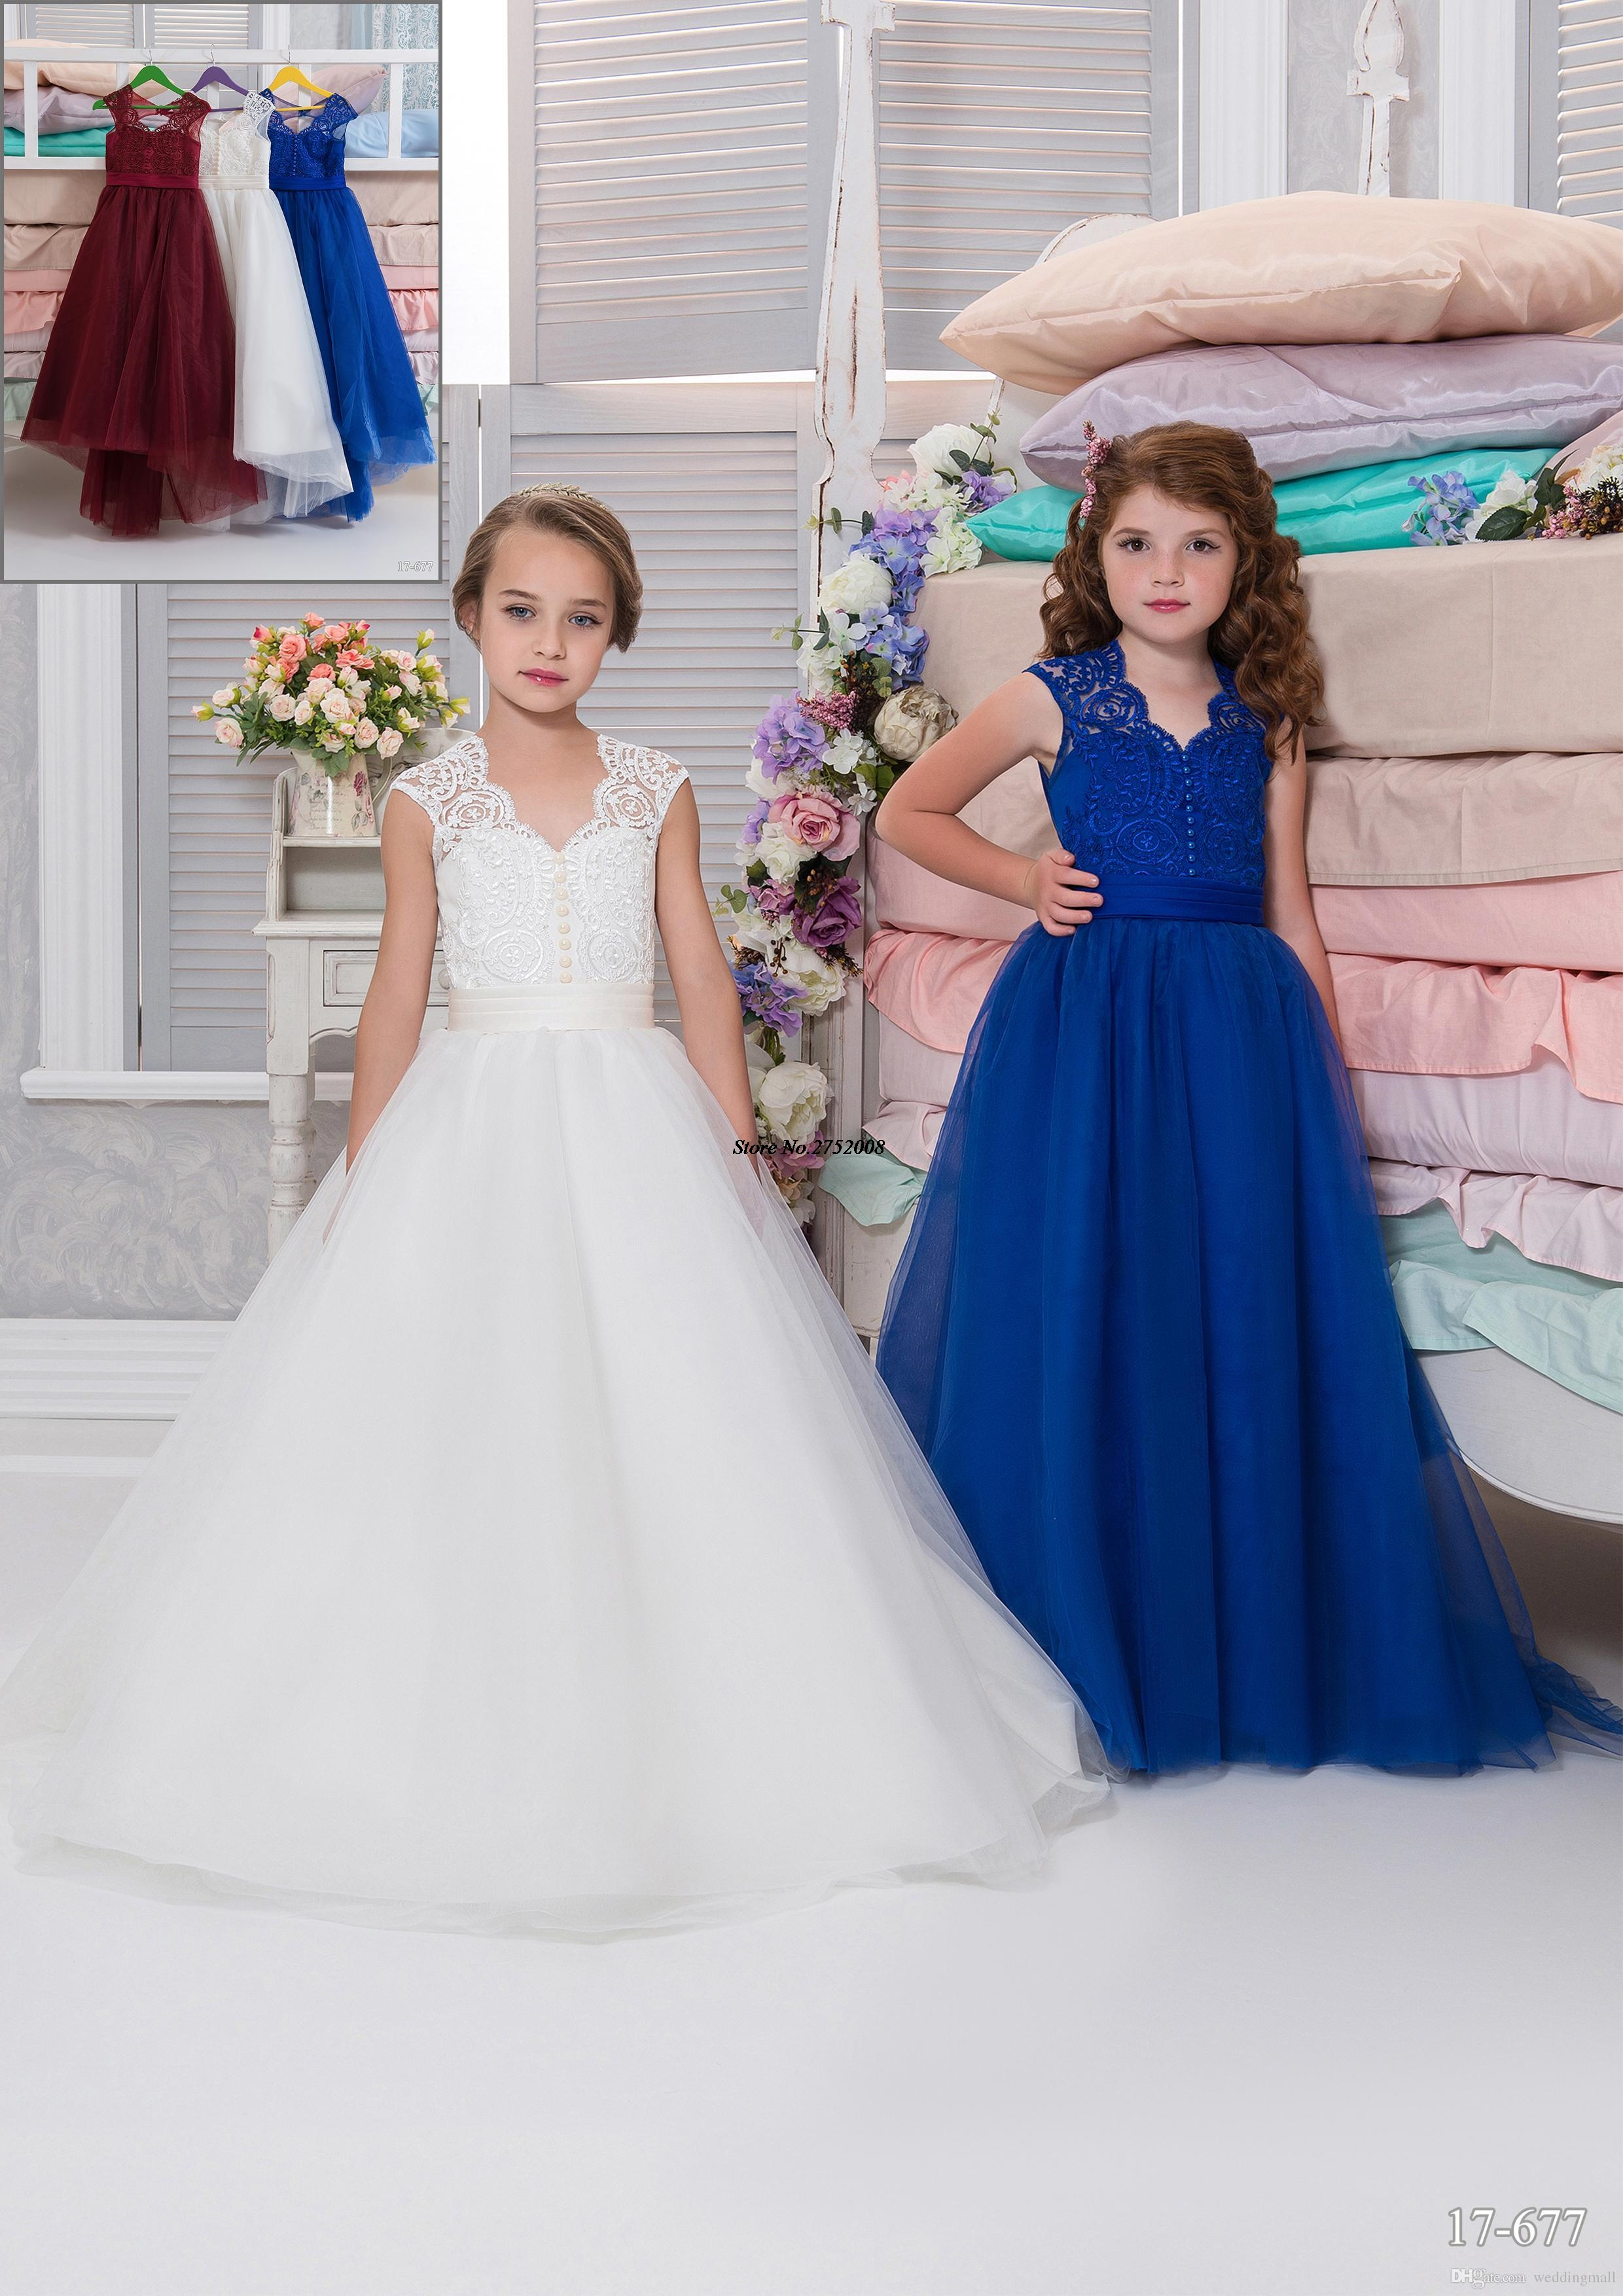 Cheap lace arabic 2017 royal blue flower girl dresses for weddings cheap lace arabic 2017 royal blue flower girl dresses for weddings ball gown tulle little girls pageant dress party gown f295 in flower girl dresses from izmirmasajfo